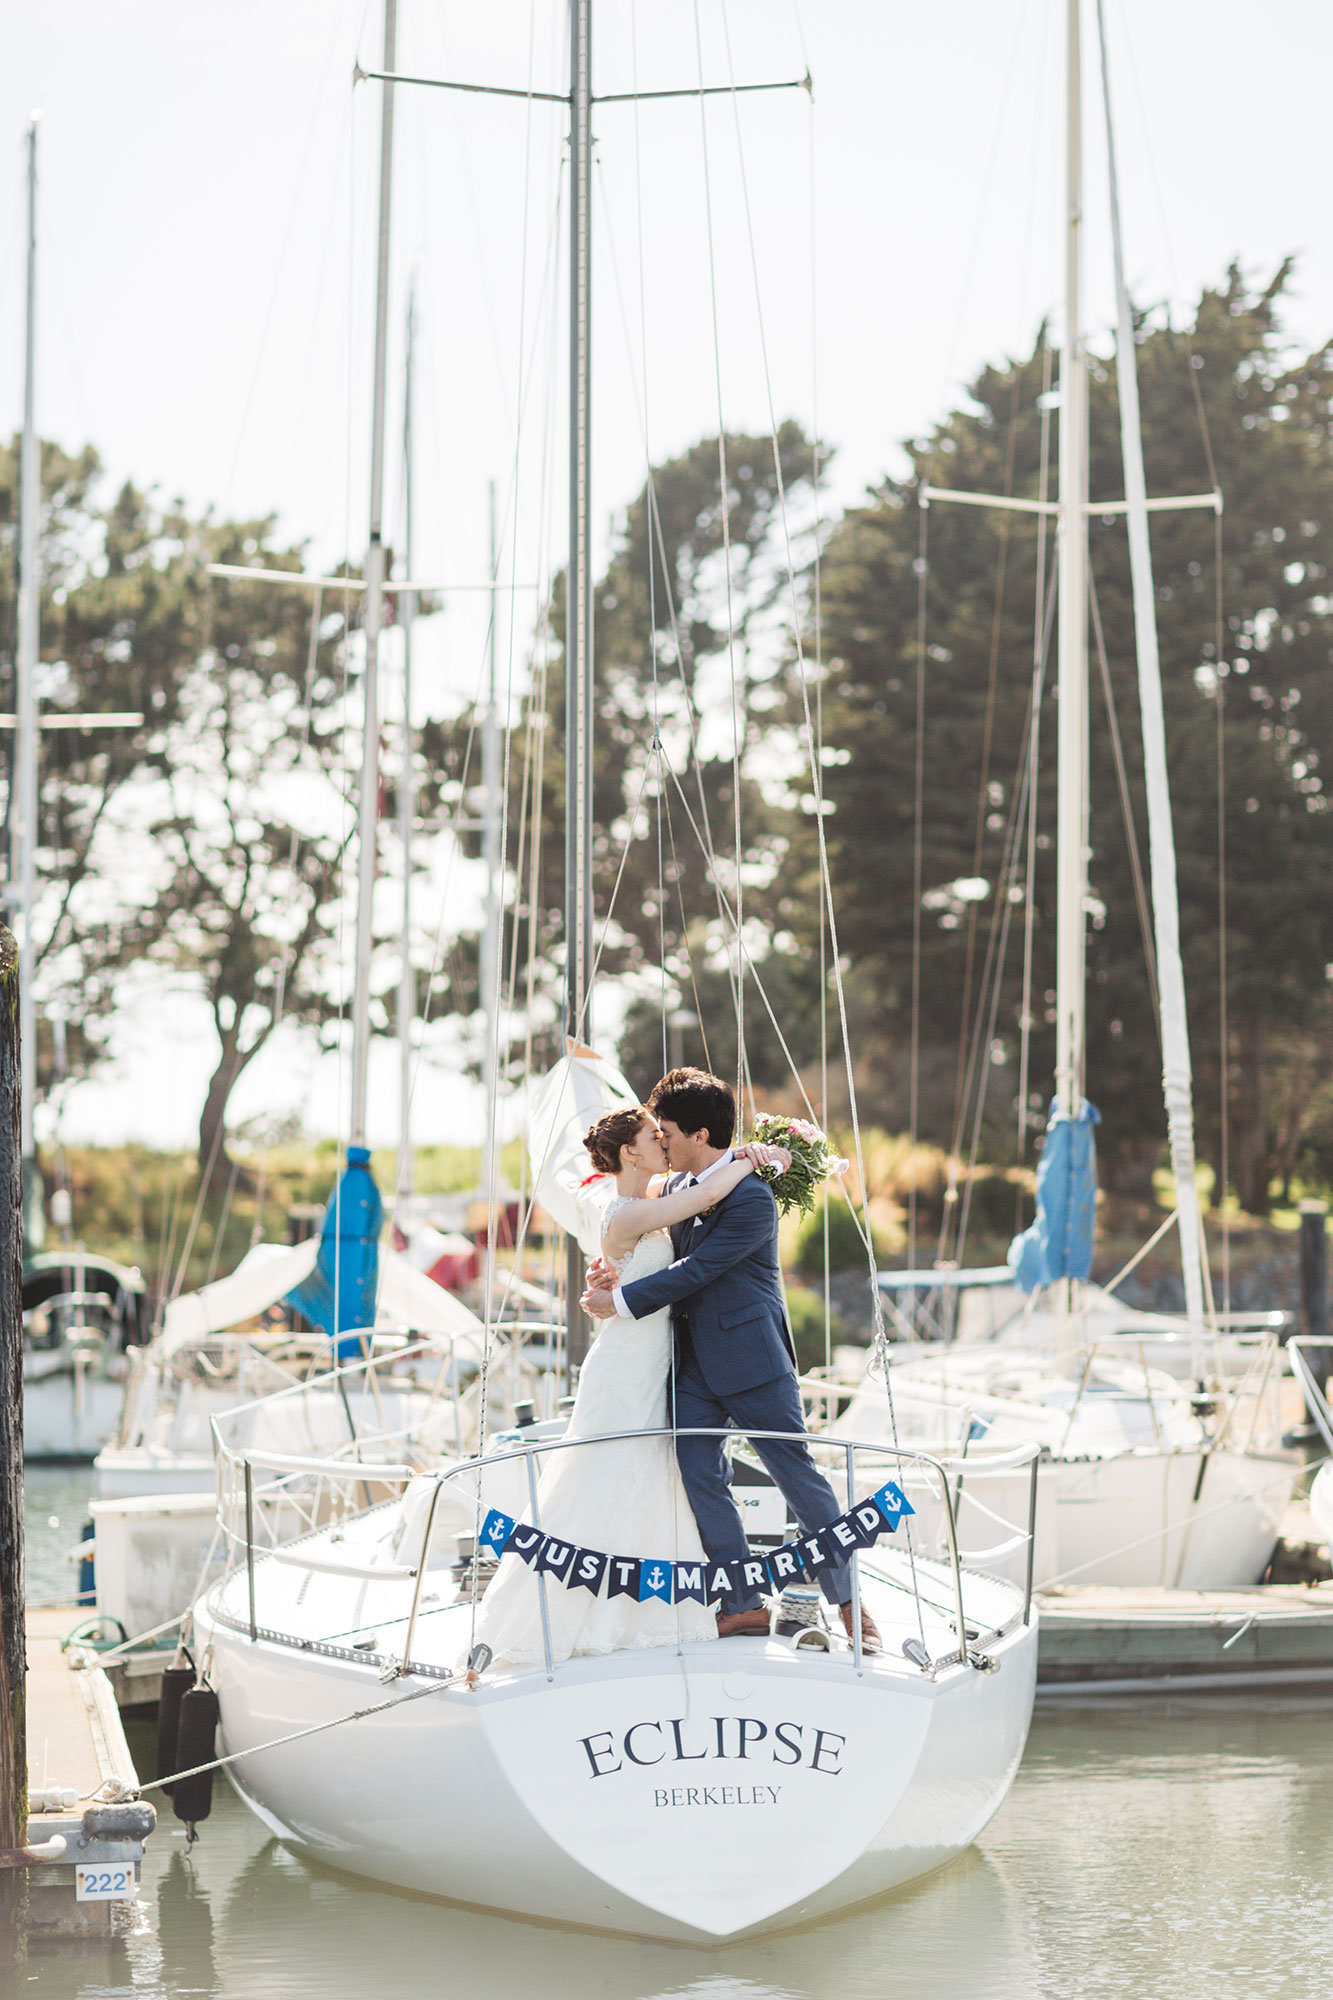 wedding shoot on couples' boat at berkeley marina